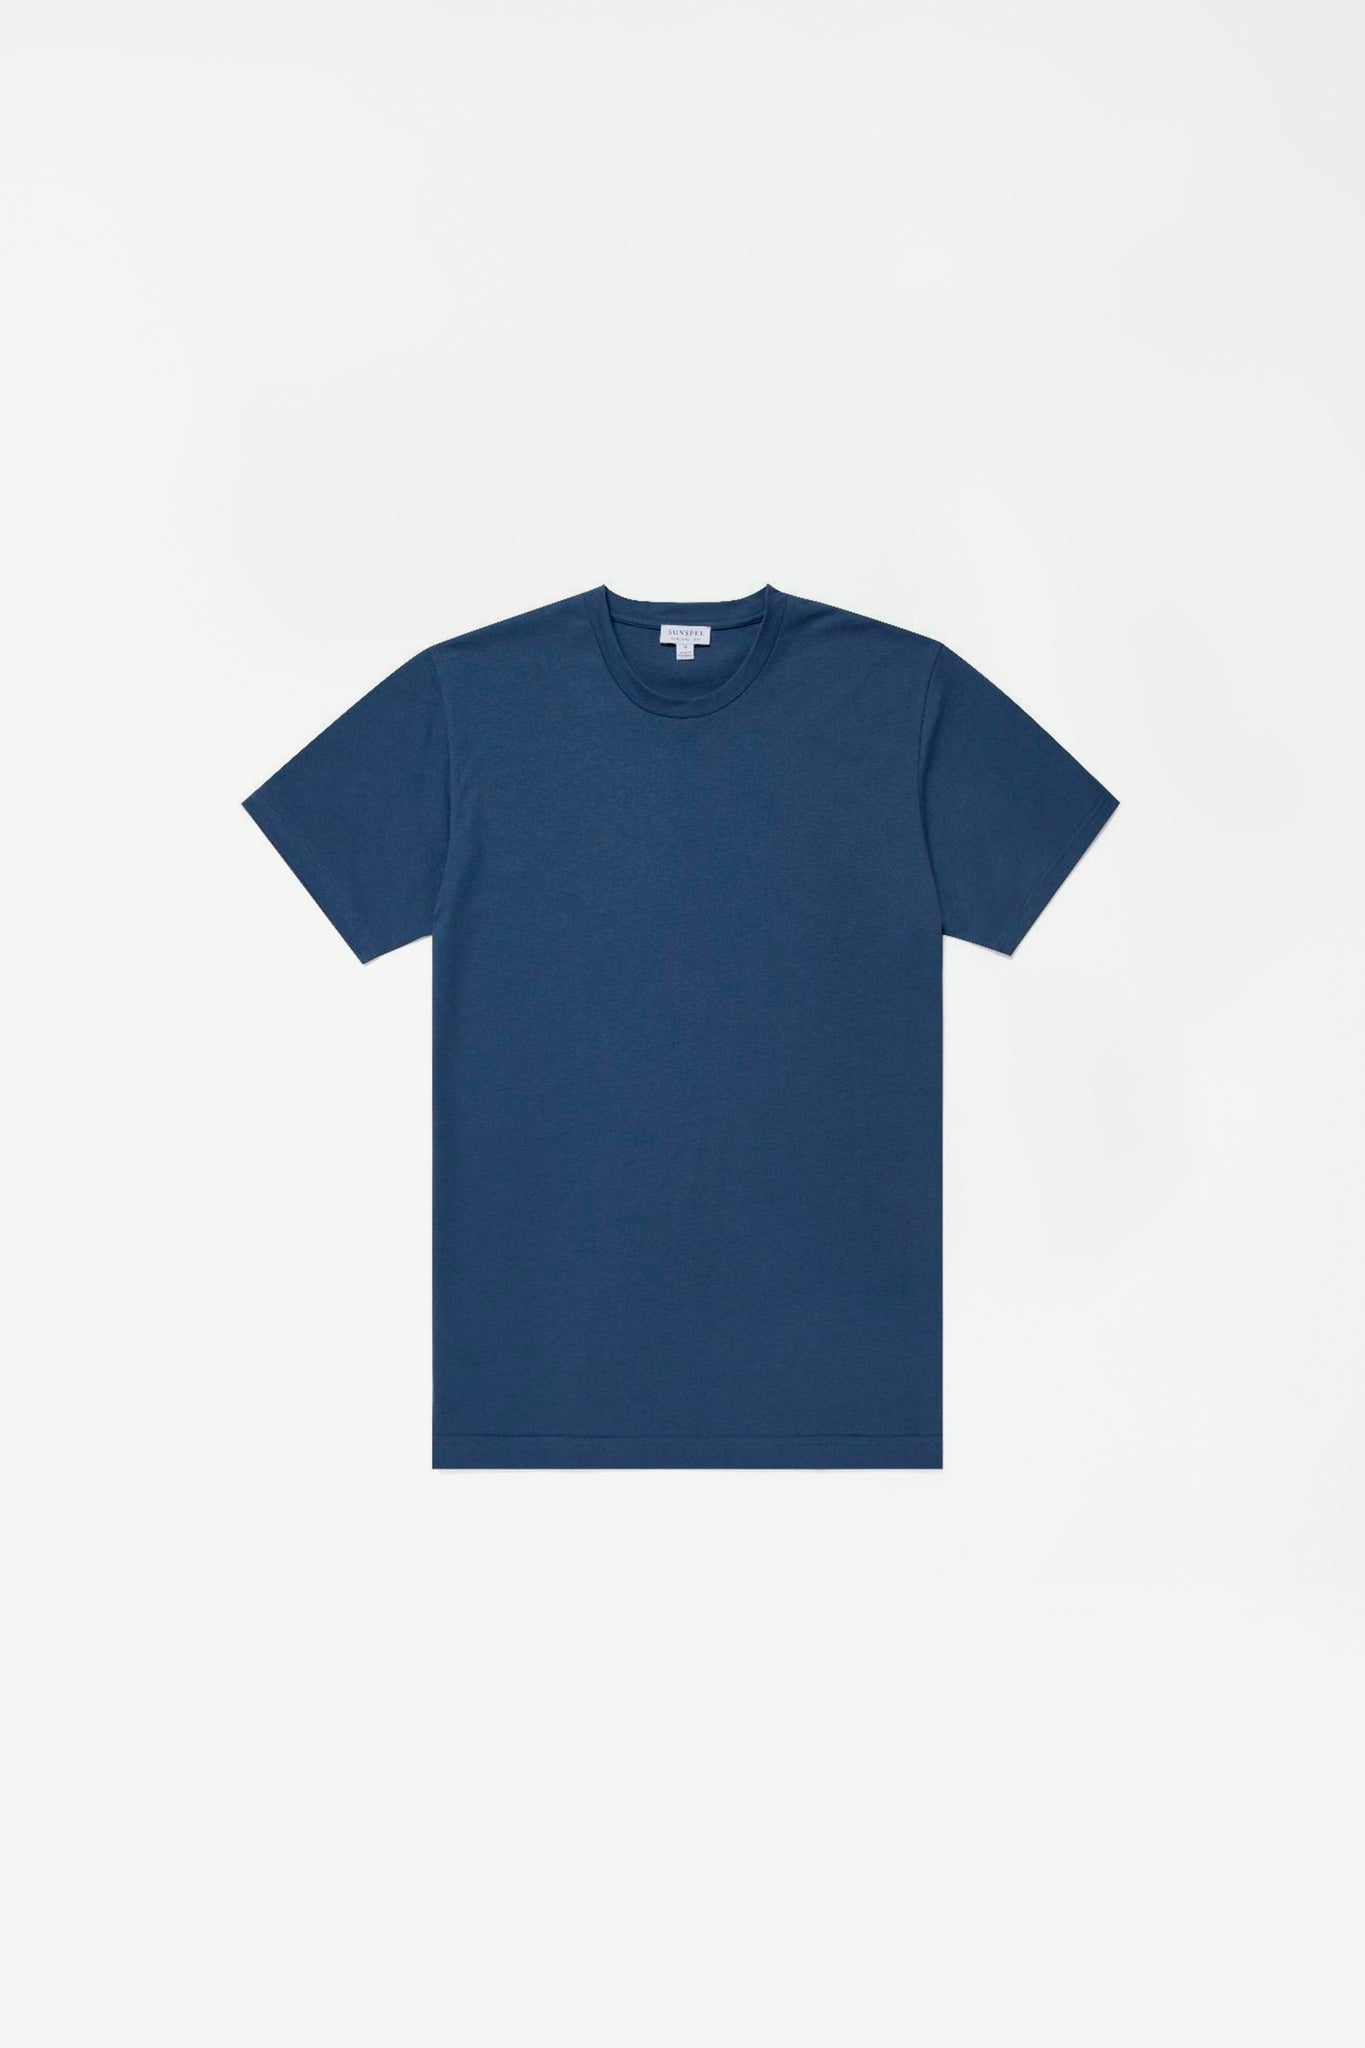 Organic cotton riviera t-shirt light smoke blue melange